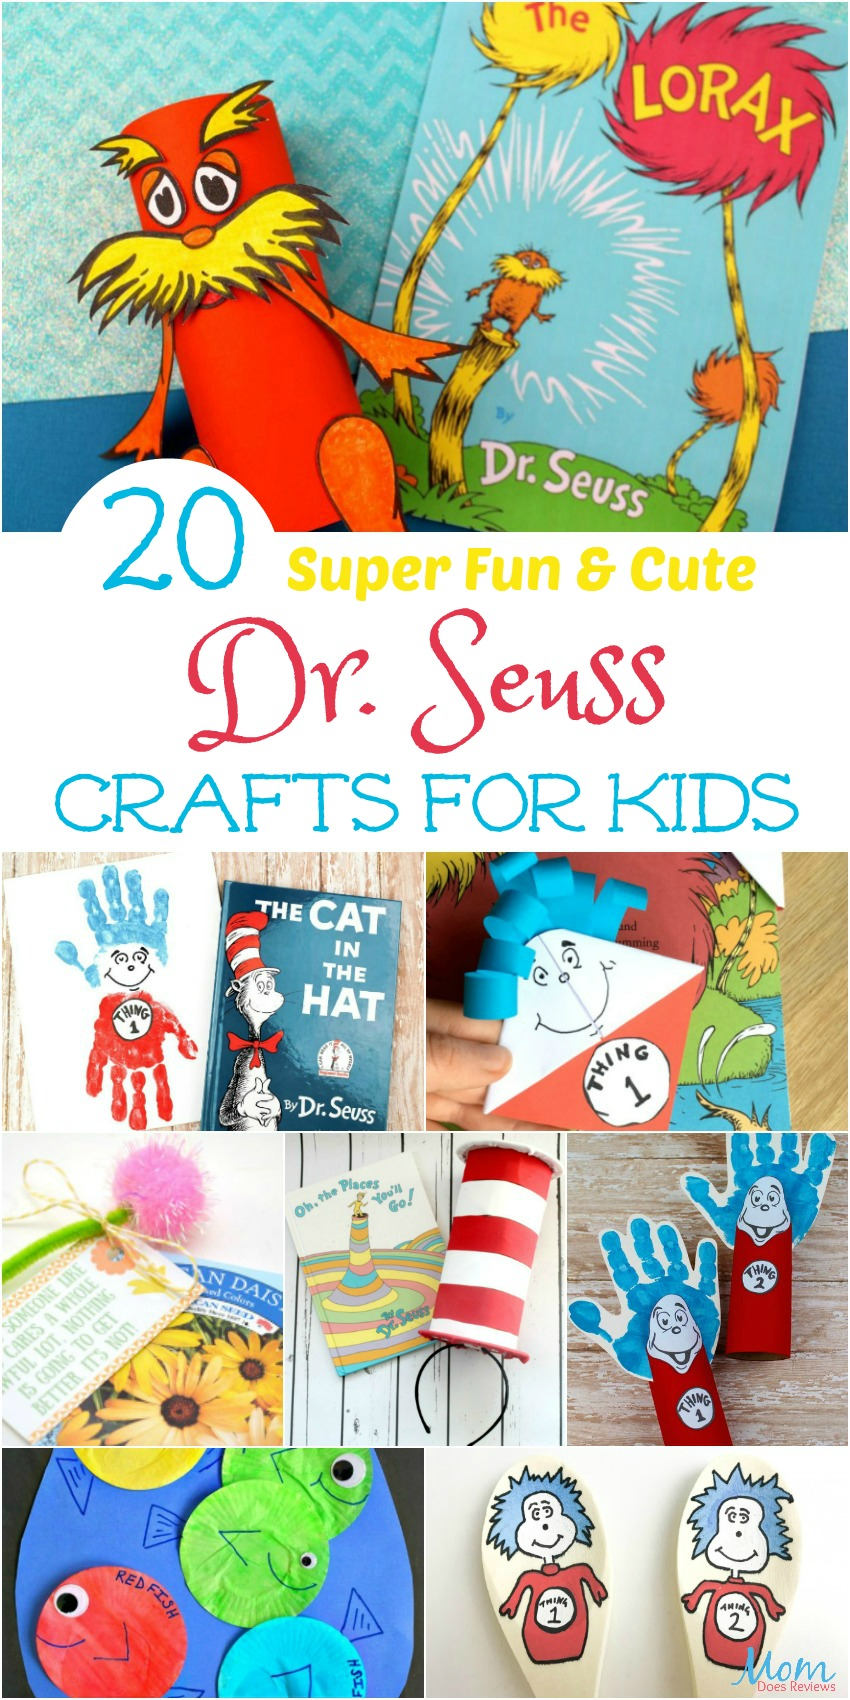 20 Super Fun & Cute Dr. Seuss Crafts for Kids  #crafts #funstuff #drseuss #fun #momapproved